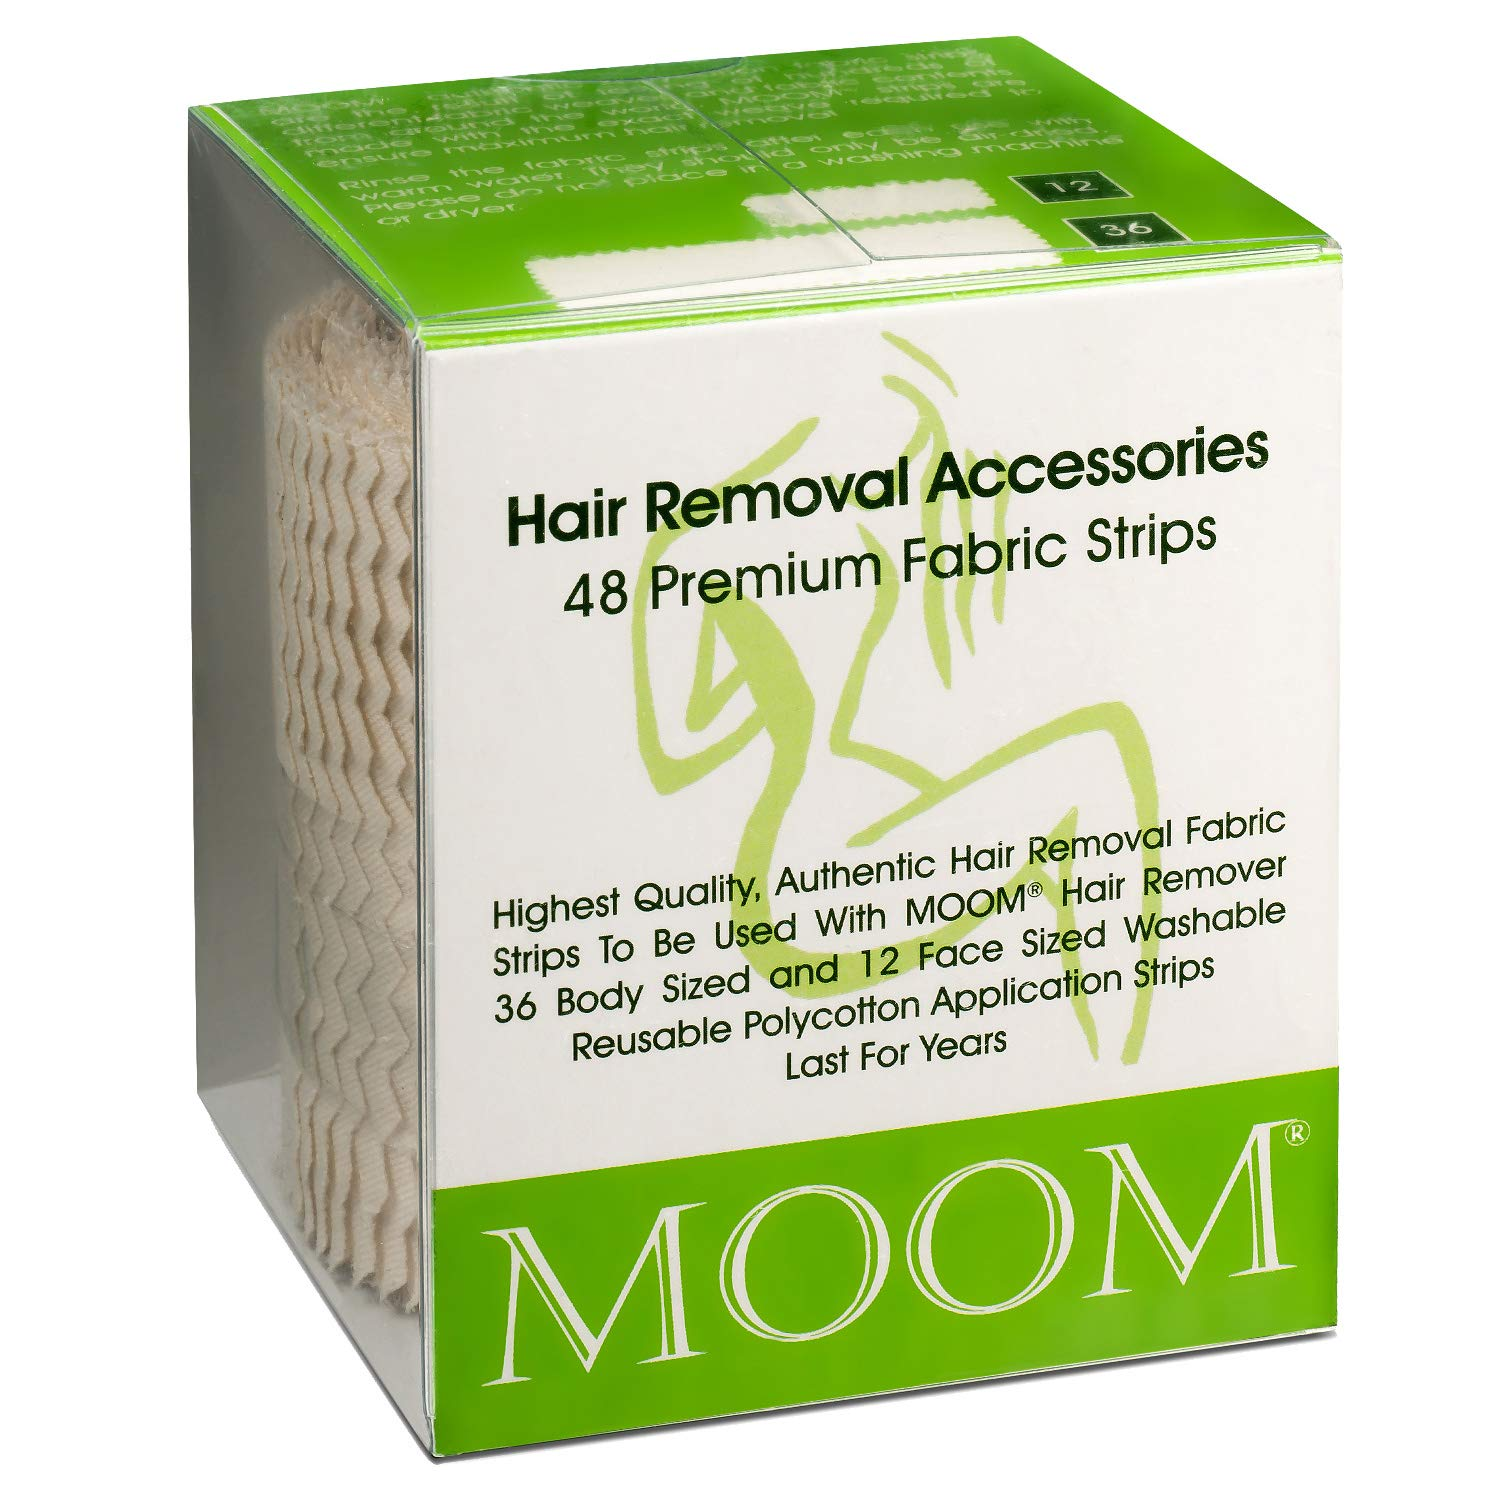 MOOM Polycotton Waxing Max 60% OFF Industry No. 1 Strips for Spe Hair Women Removal